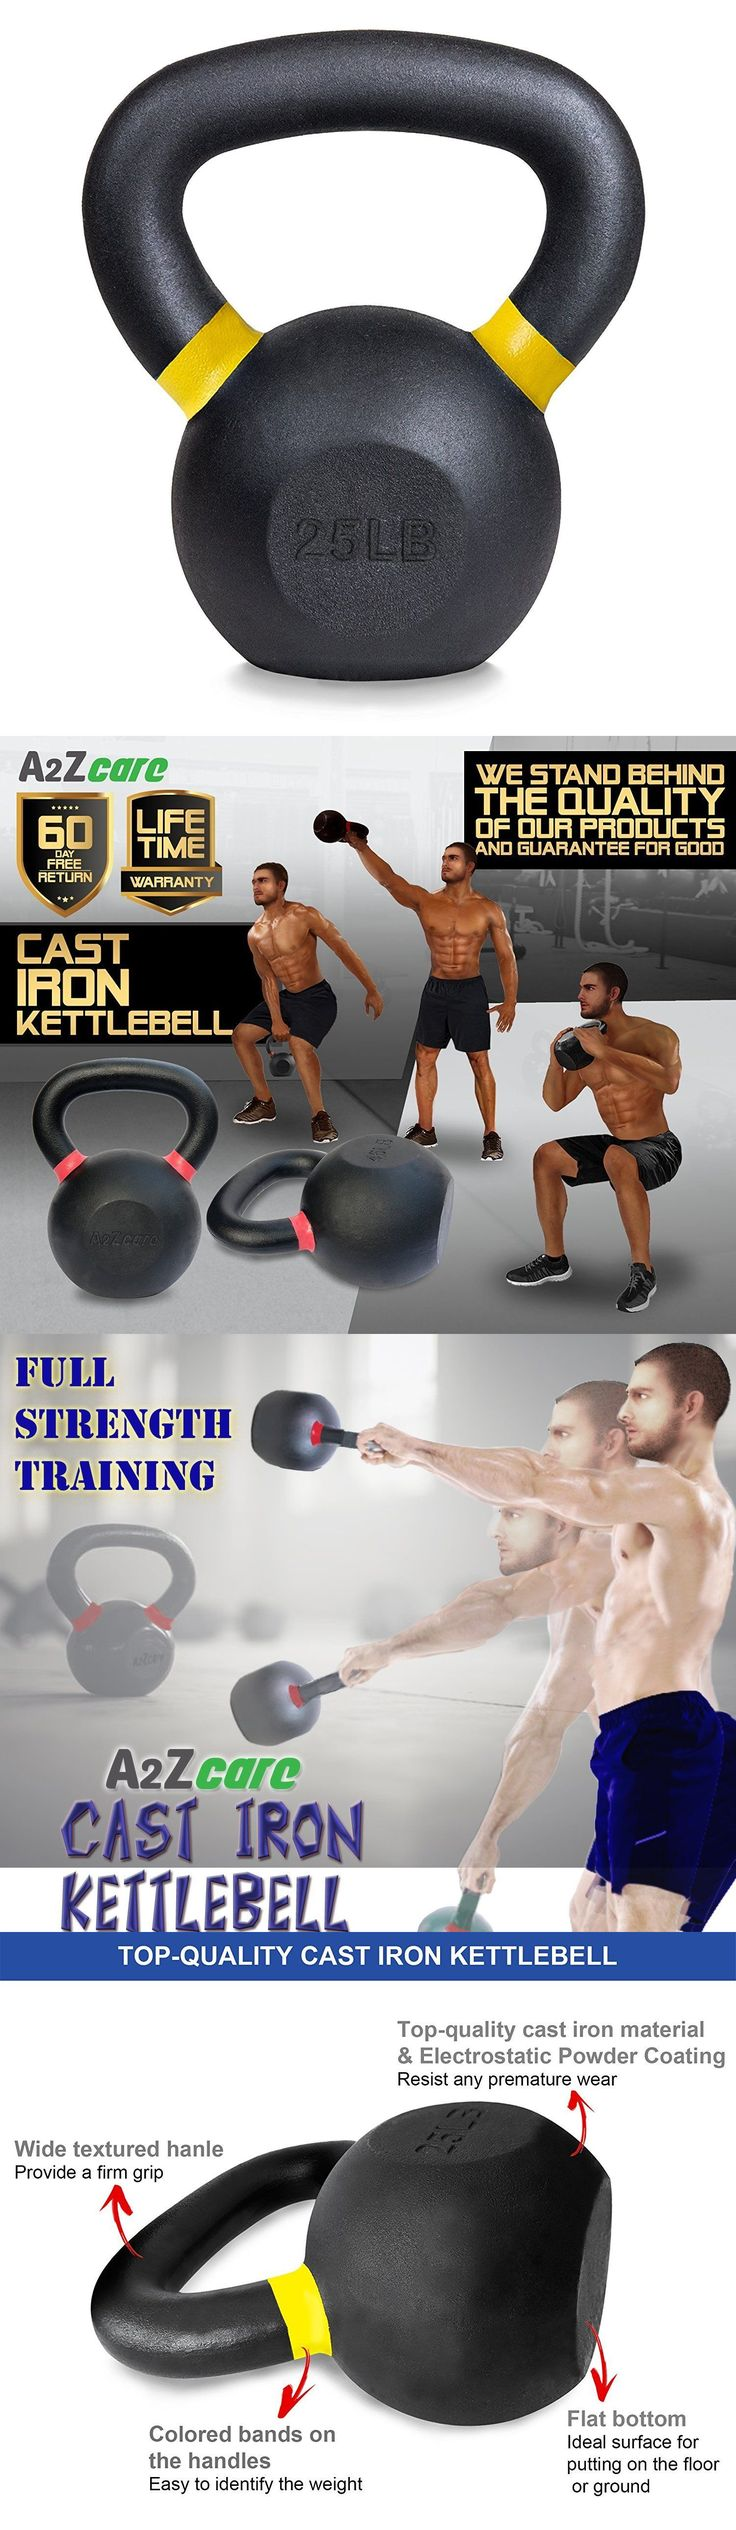 Kettlebells 179814: A2zcare Cast Iron Kettlebell Weights For Swing, Squats And Exercise Workout 25 Lbs -> BUY IT NOW ONLY: $59.58 on eBay!  https://www.kettlebellmaniac.com/shop/